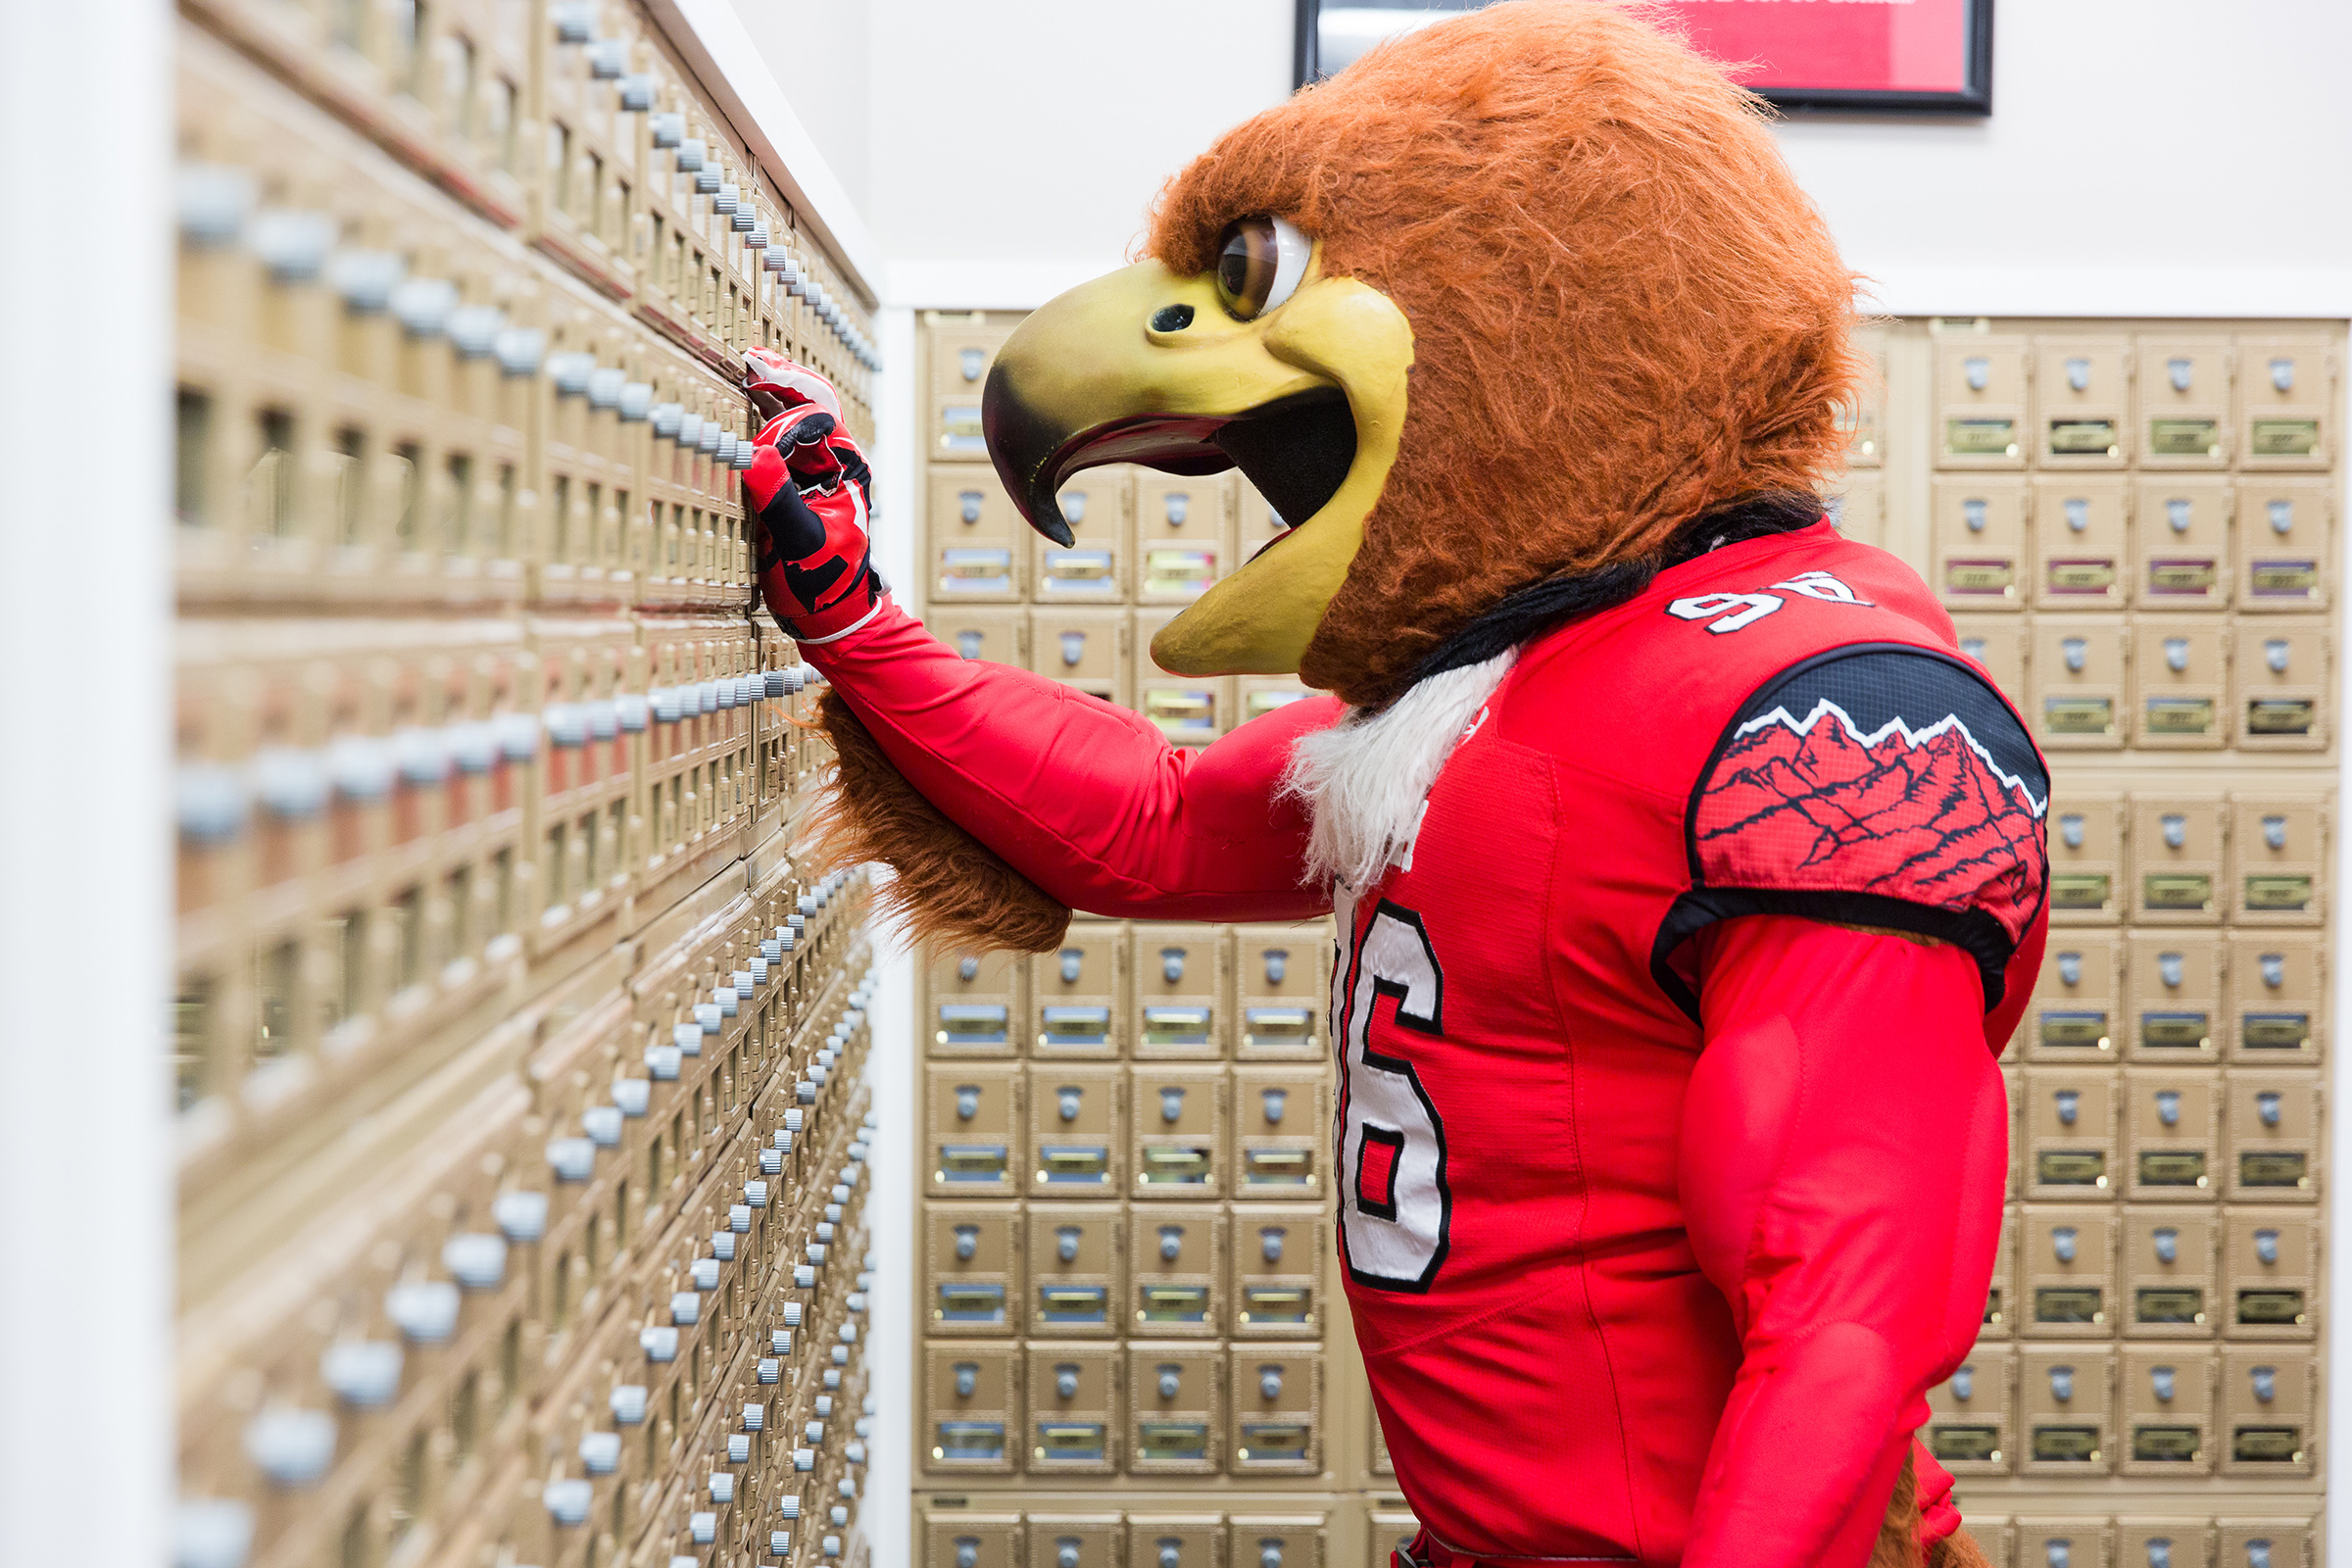 Swoop by the mailboxes